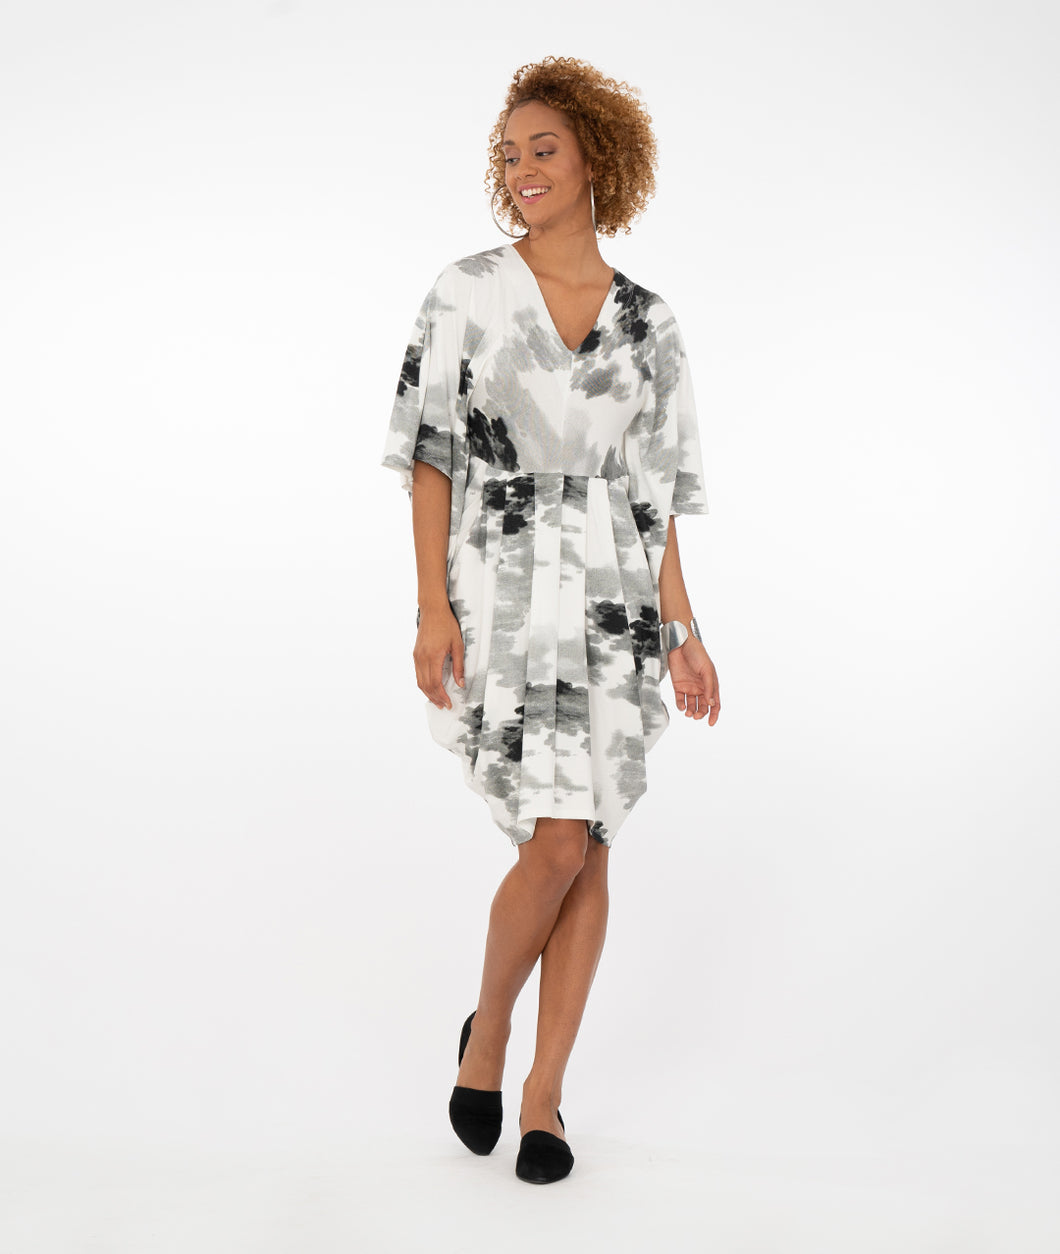 model wearing a black and white floral dress in front of a white background